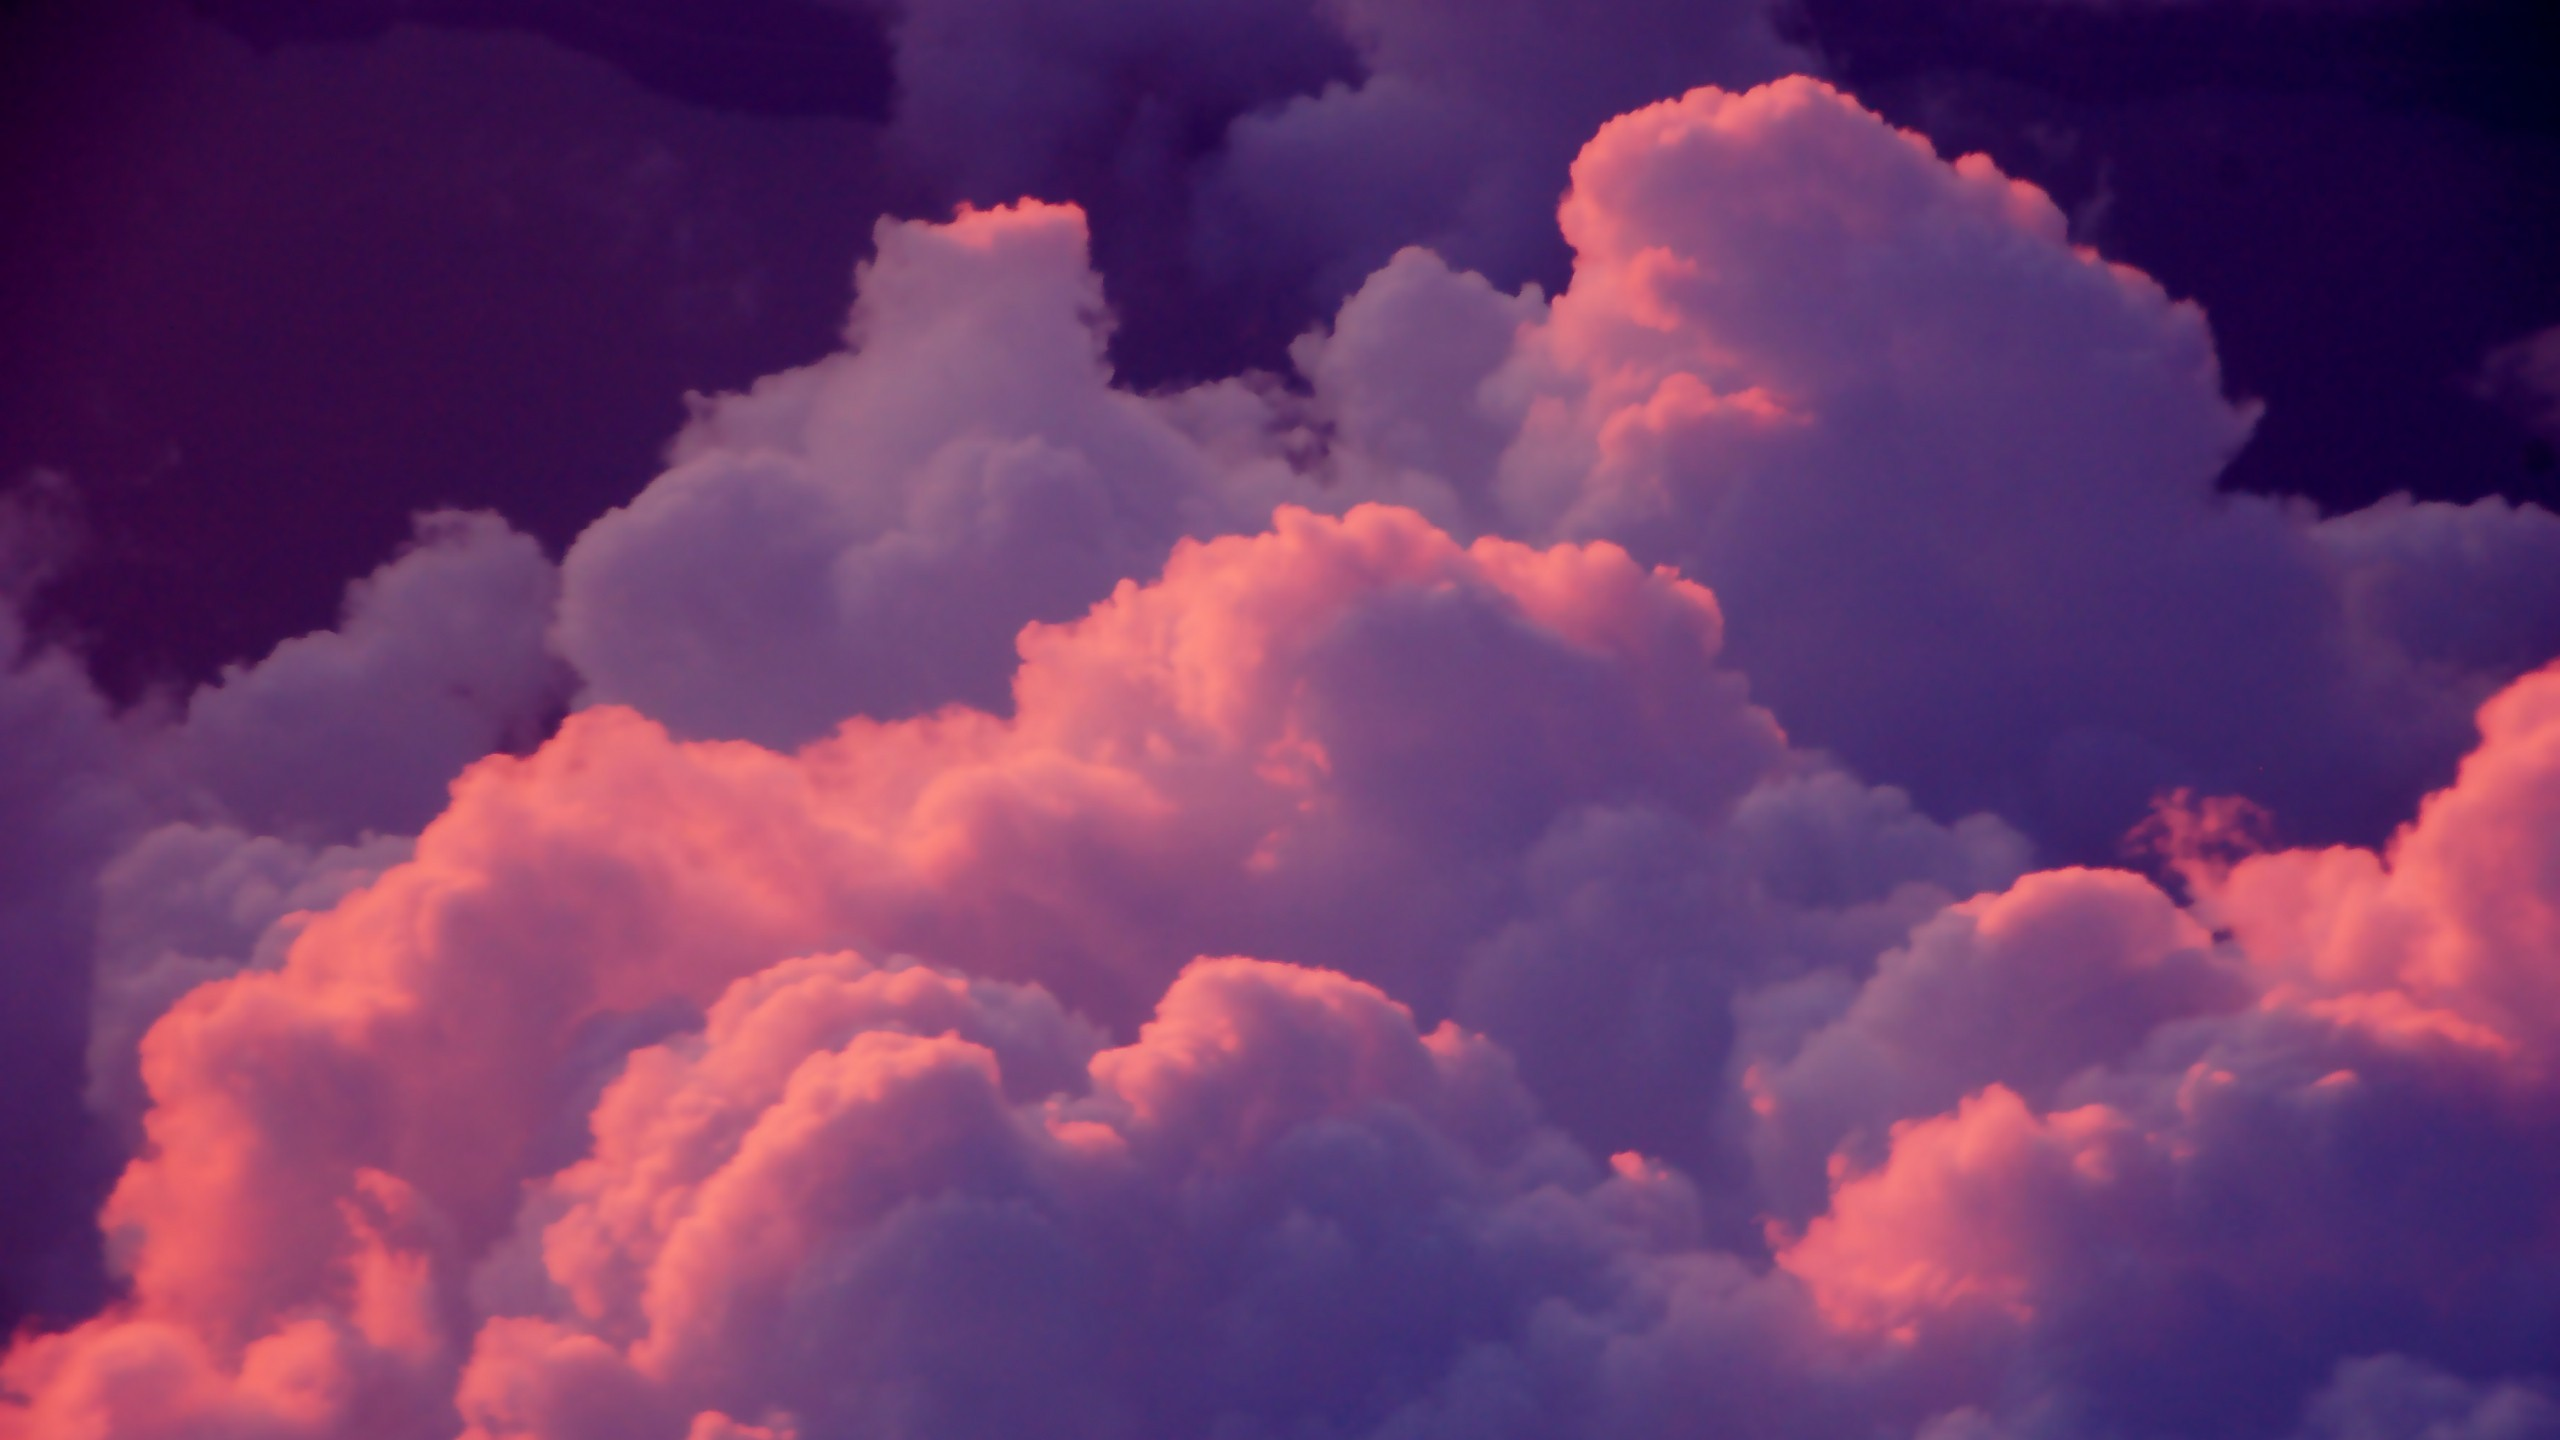 2560x1440 Pink Clouds YouTube Channel Cover